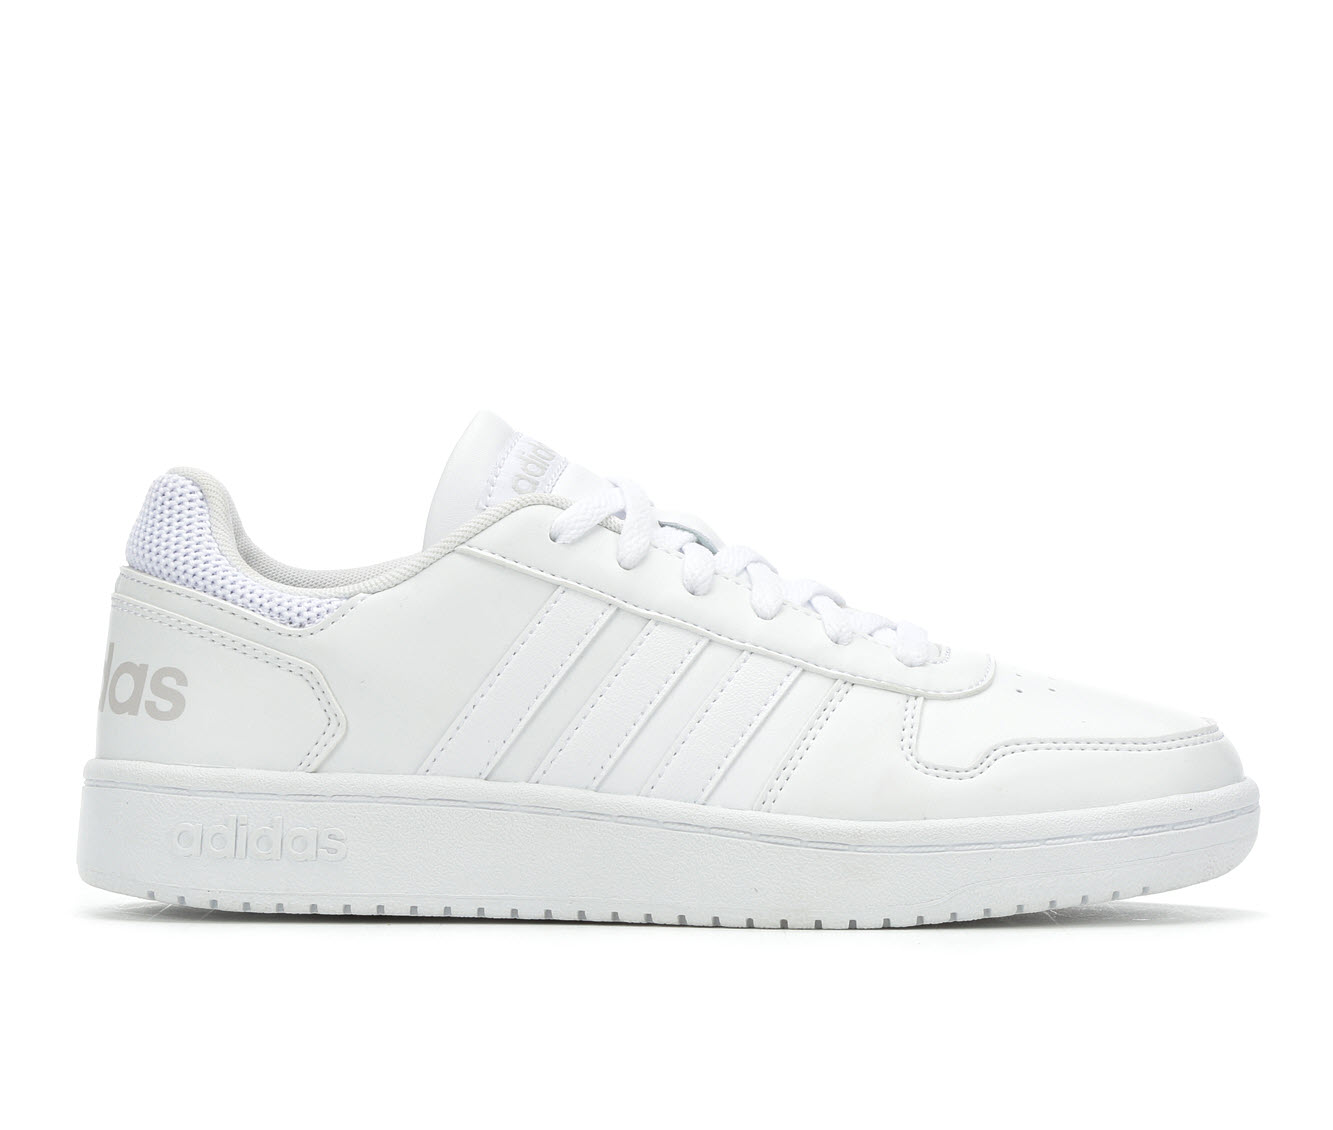 Adidas Hoops 2.0 Women's Athletic Shoe (White)